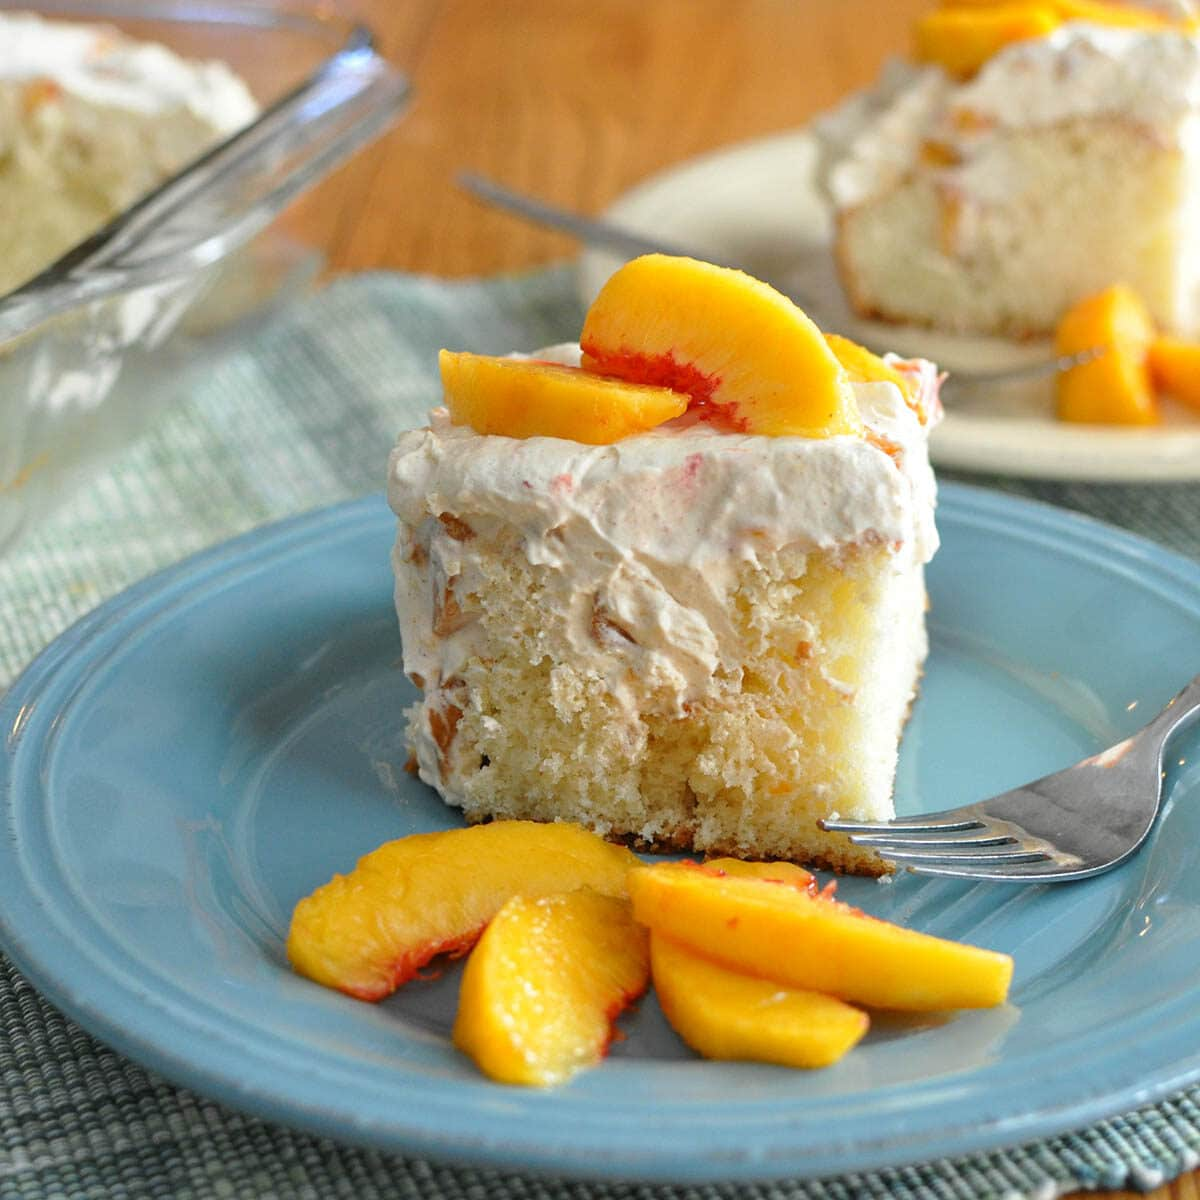 a slice of cake with peaches on a blue plate